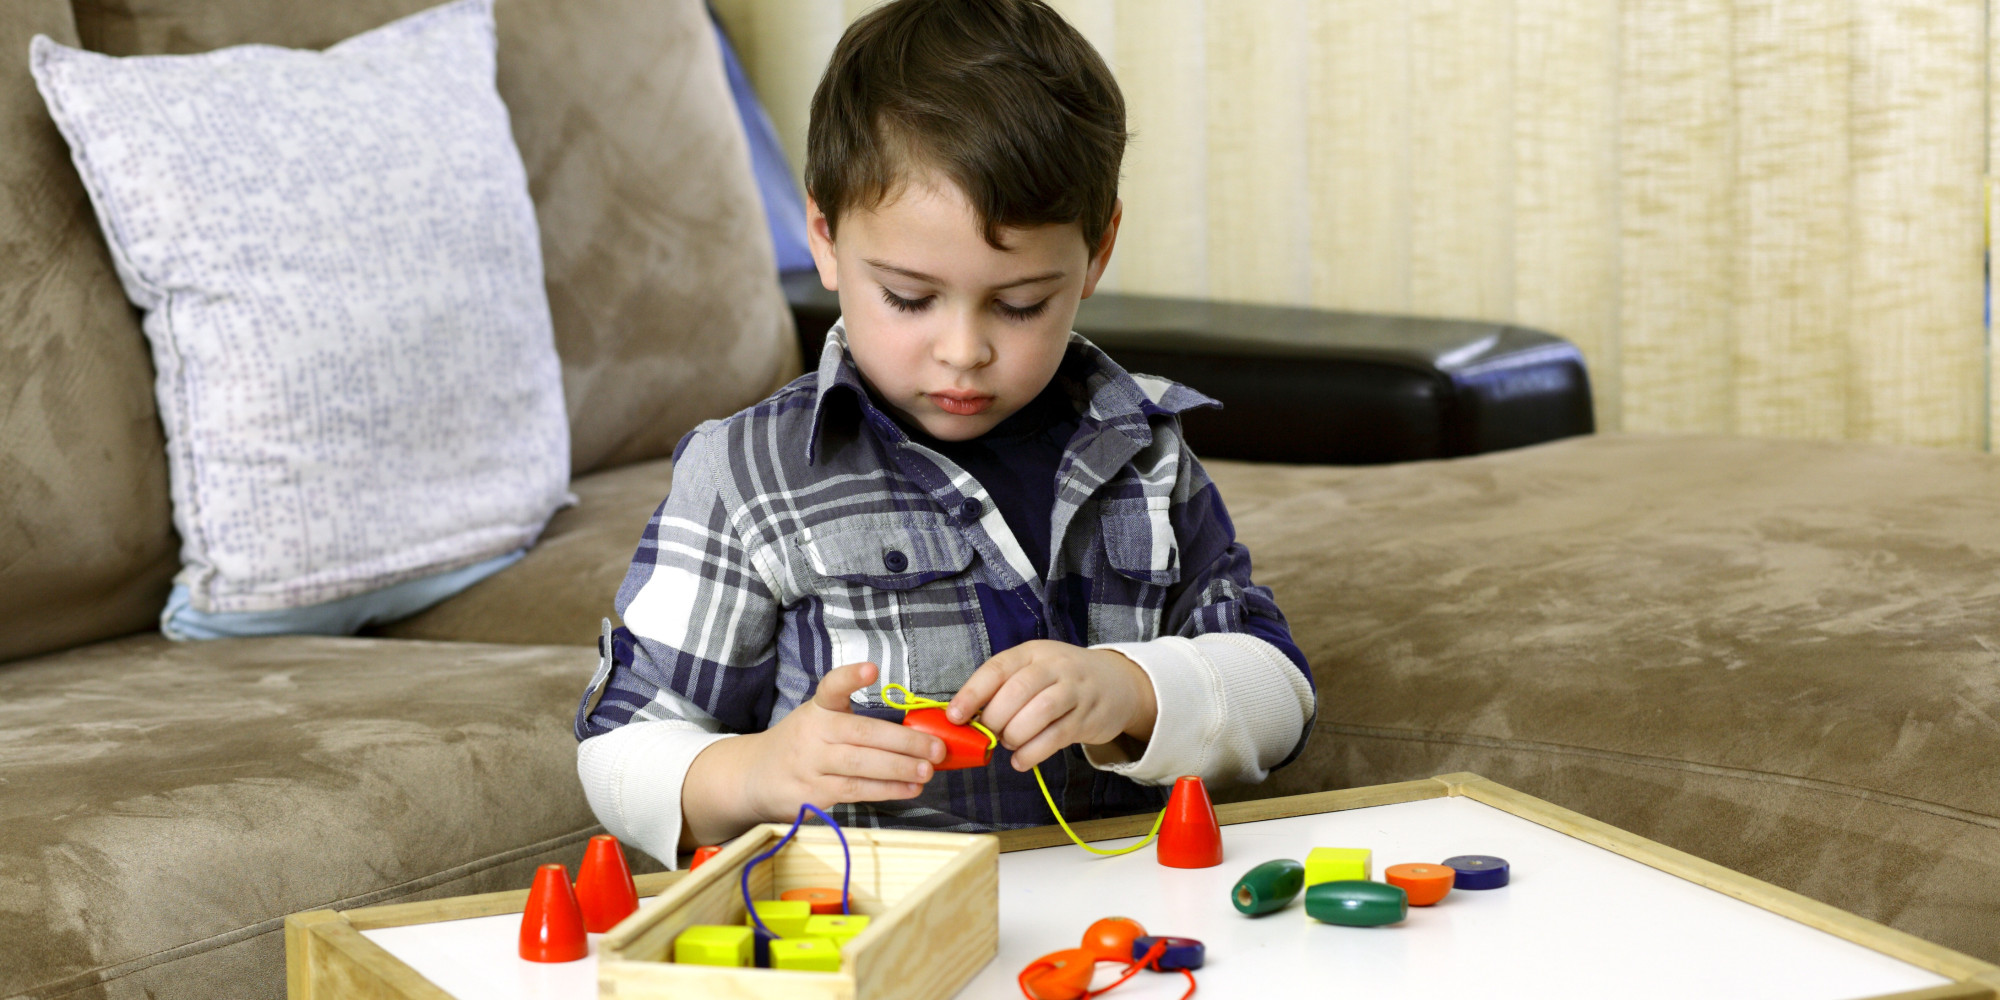 More Children With Autism Are Going To College Than Ever Before